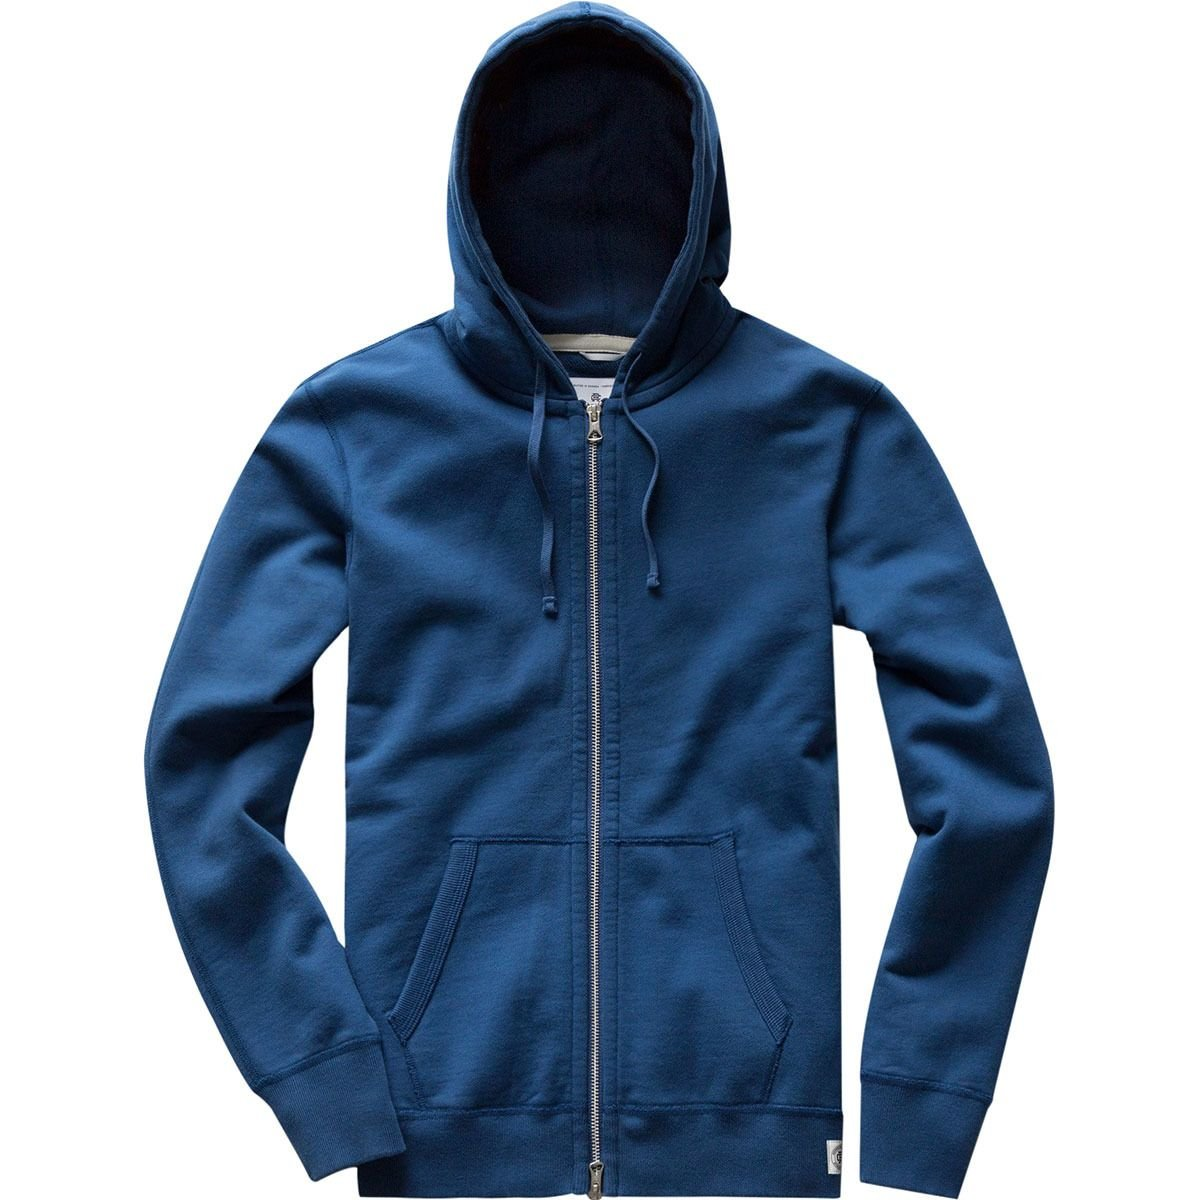 Reigning Champ Full-Zip Hoodie - Men's Court Blue, M